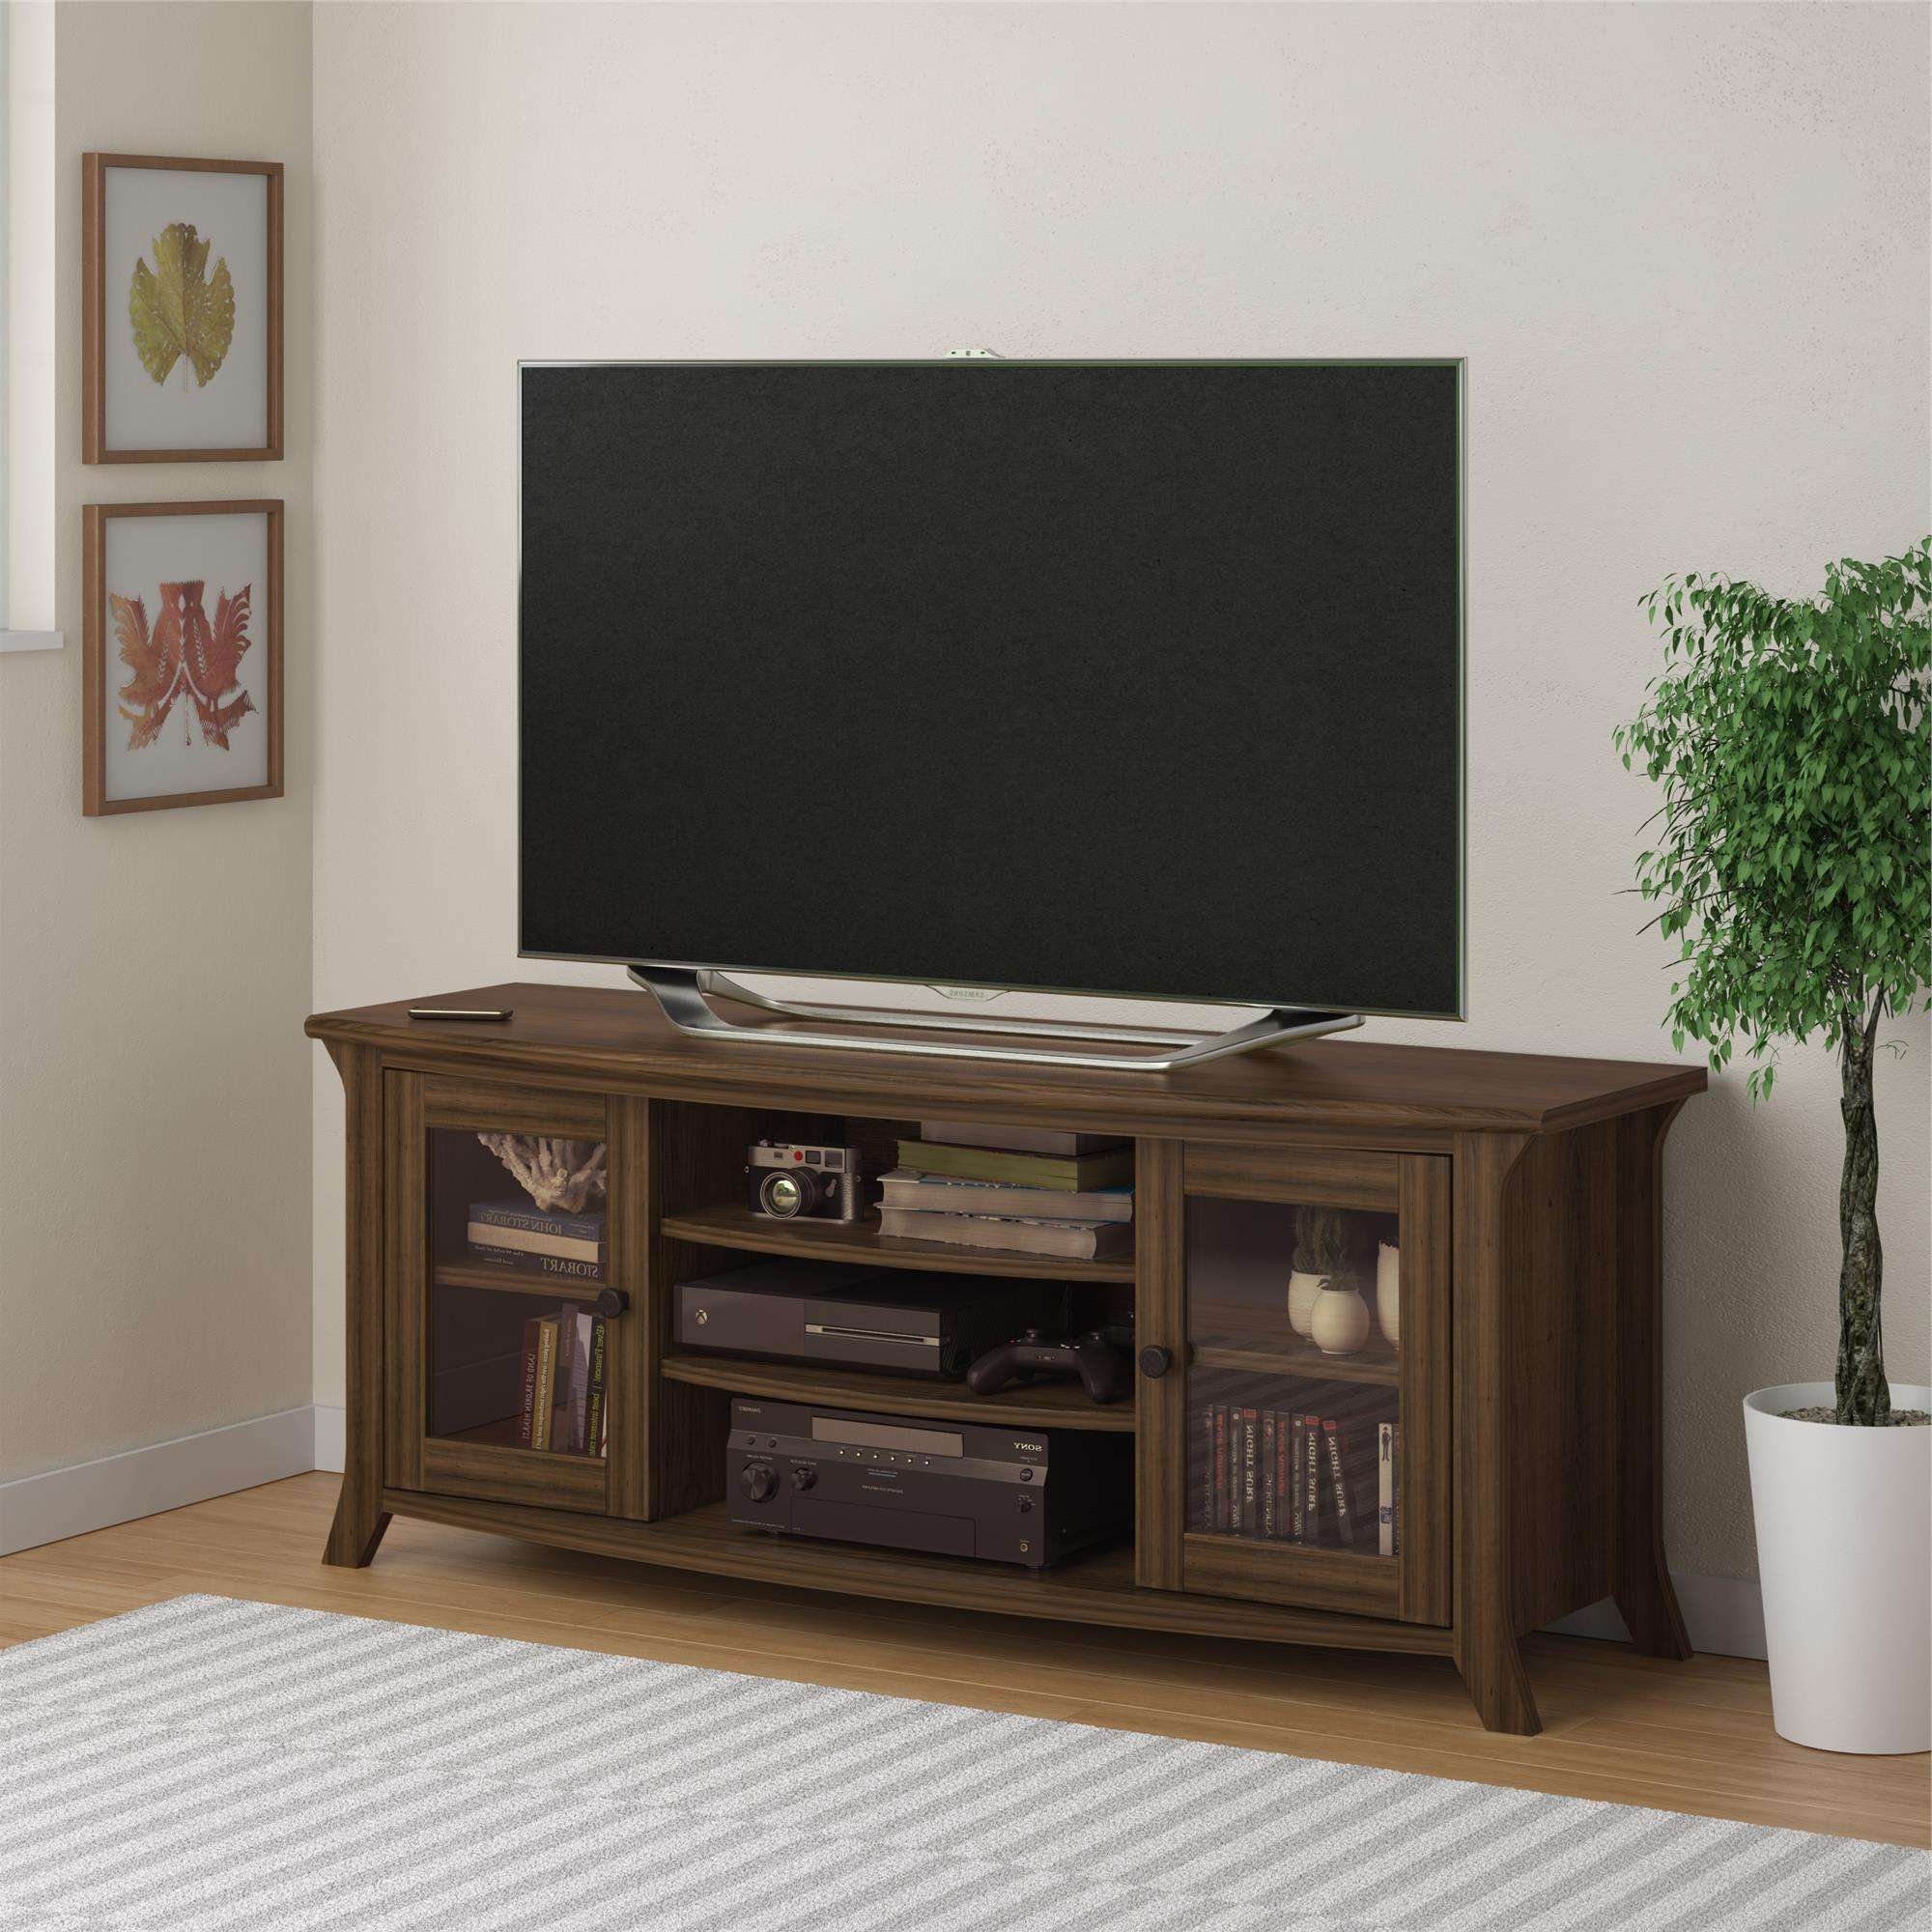 Ameriwood Furniture | Oakridge Tv Stand With Glass Doors For Tvs In Oak Tv Stands With Glass Doors (View 2 of 15)